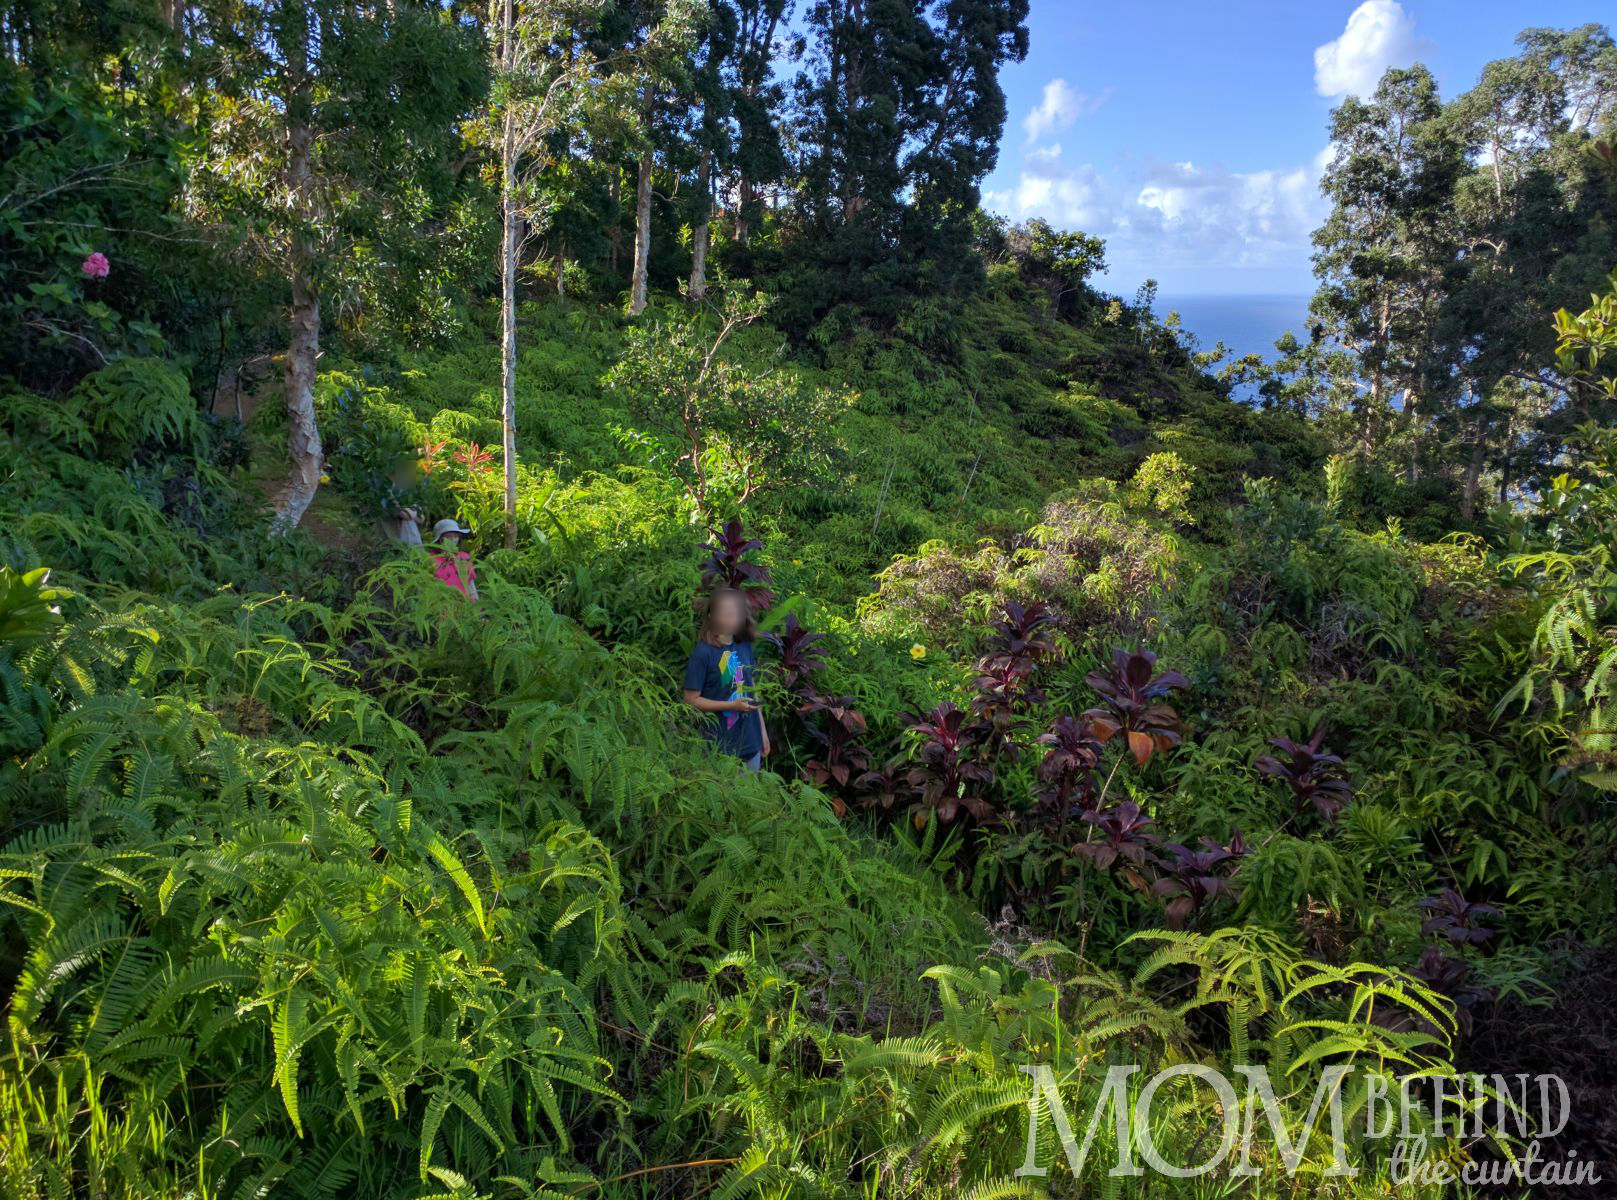 Waking through the rain forest in Maui's Garden of Eden.